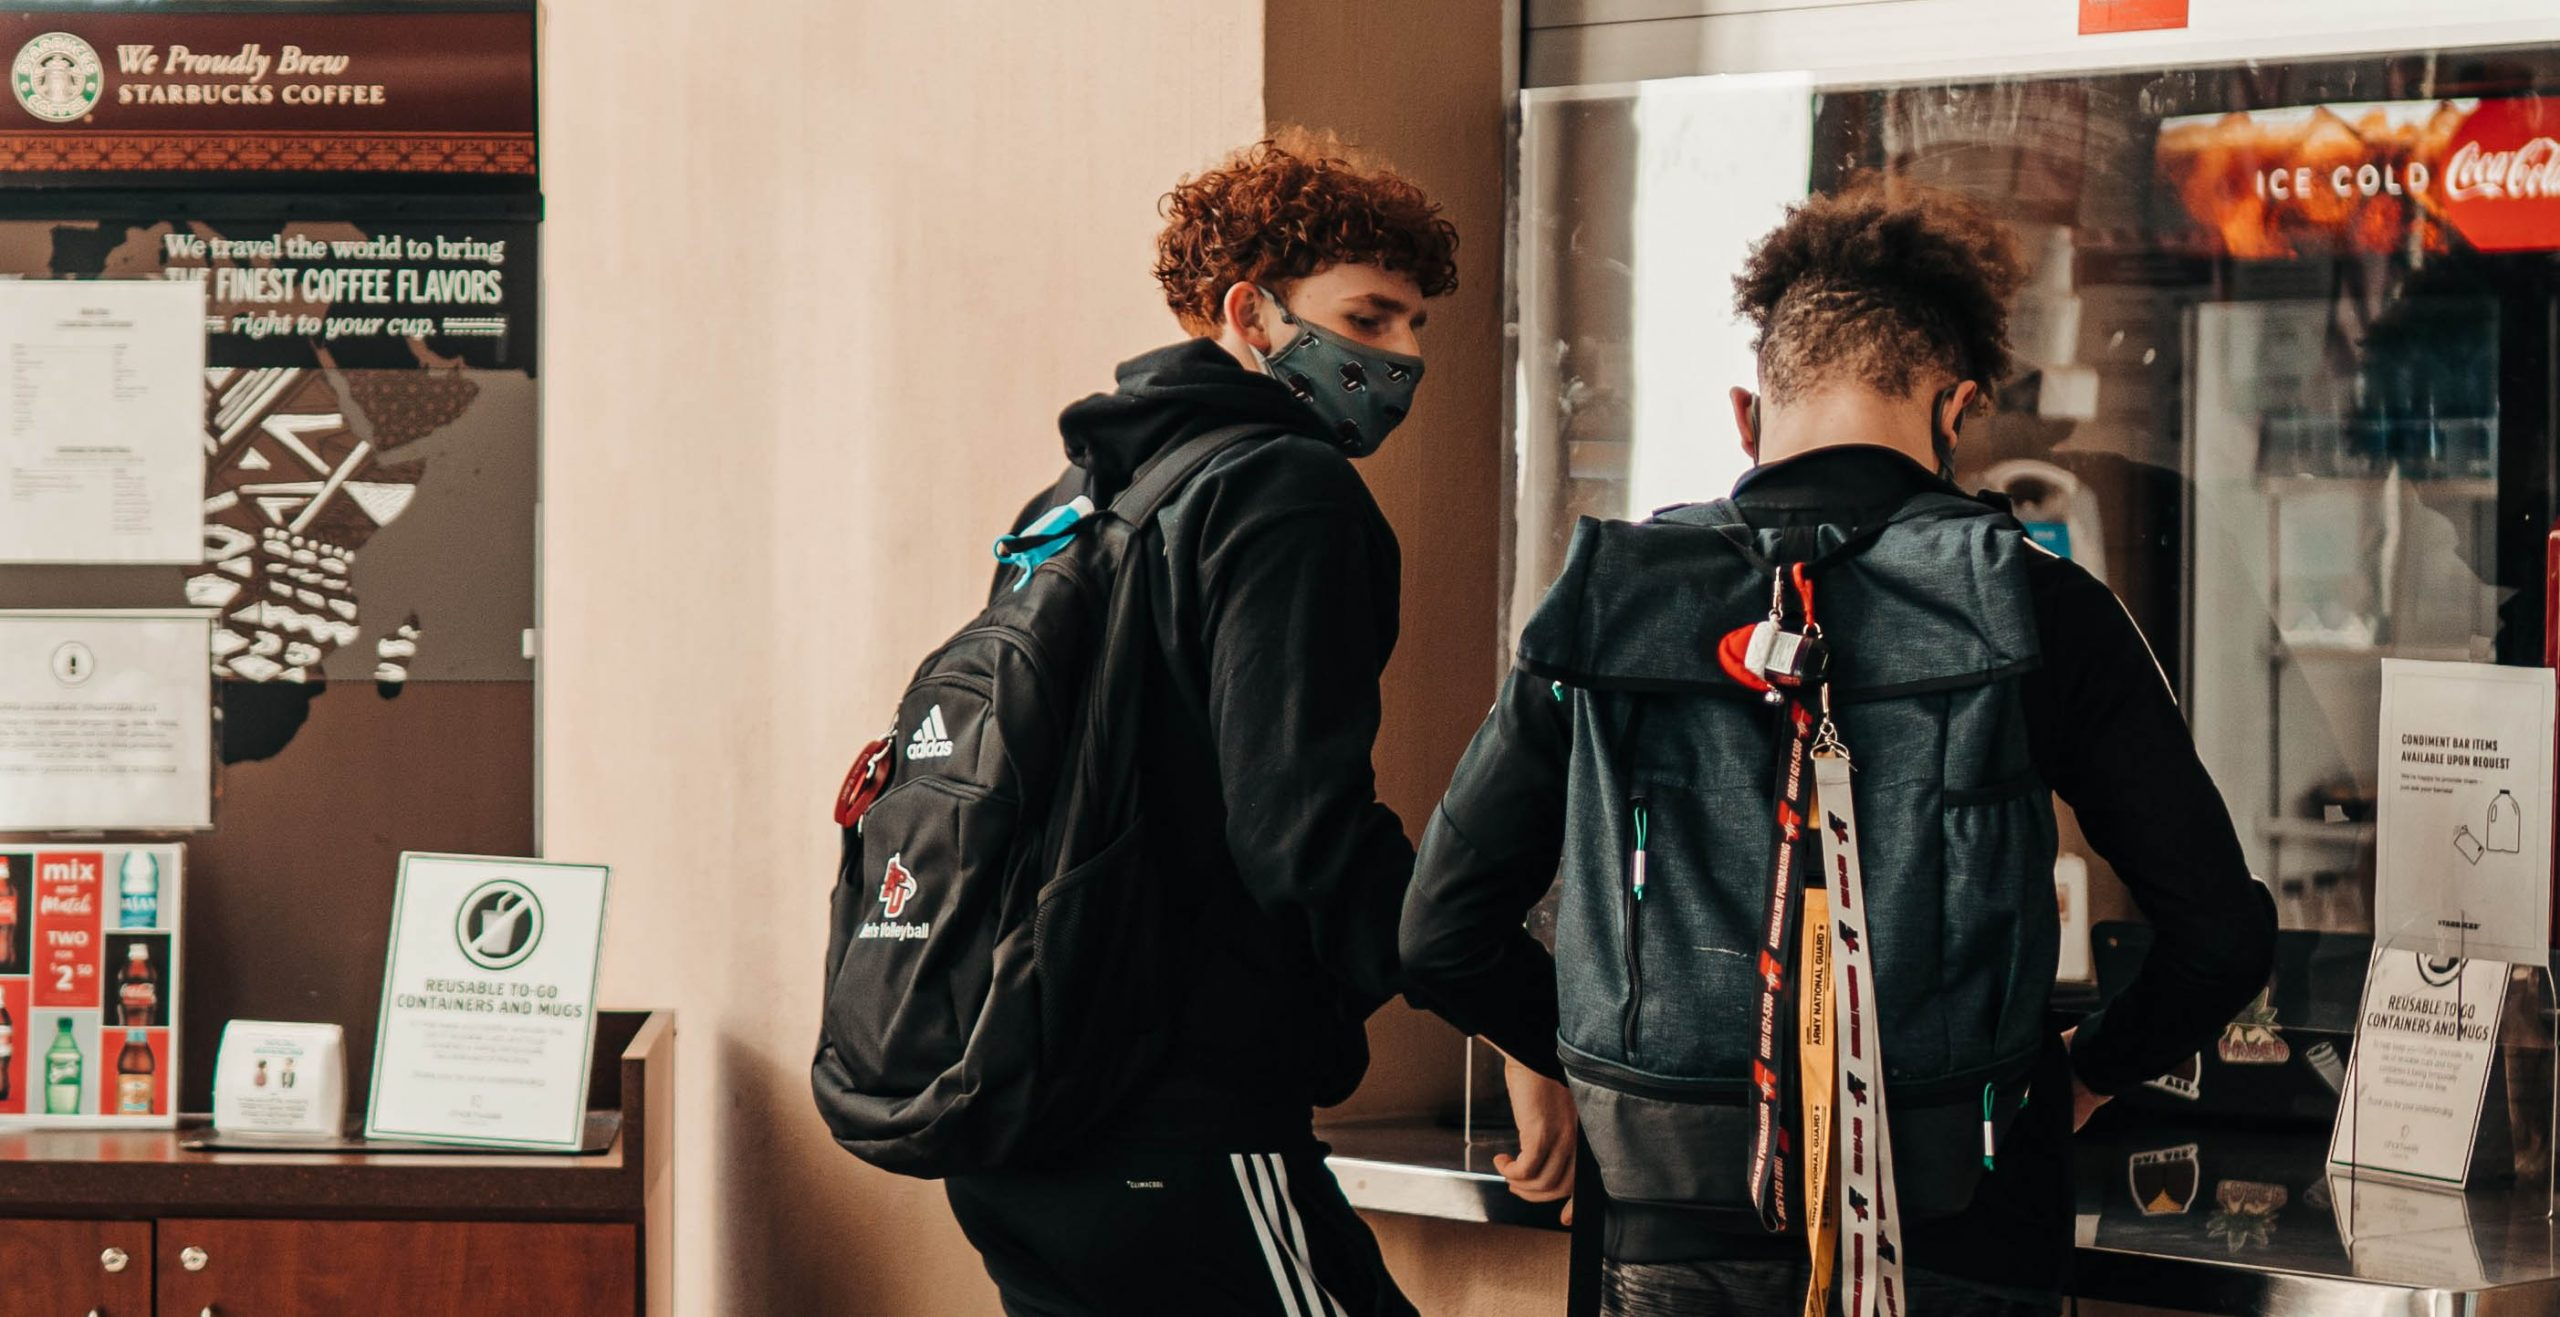 Two male students at Starbucks